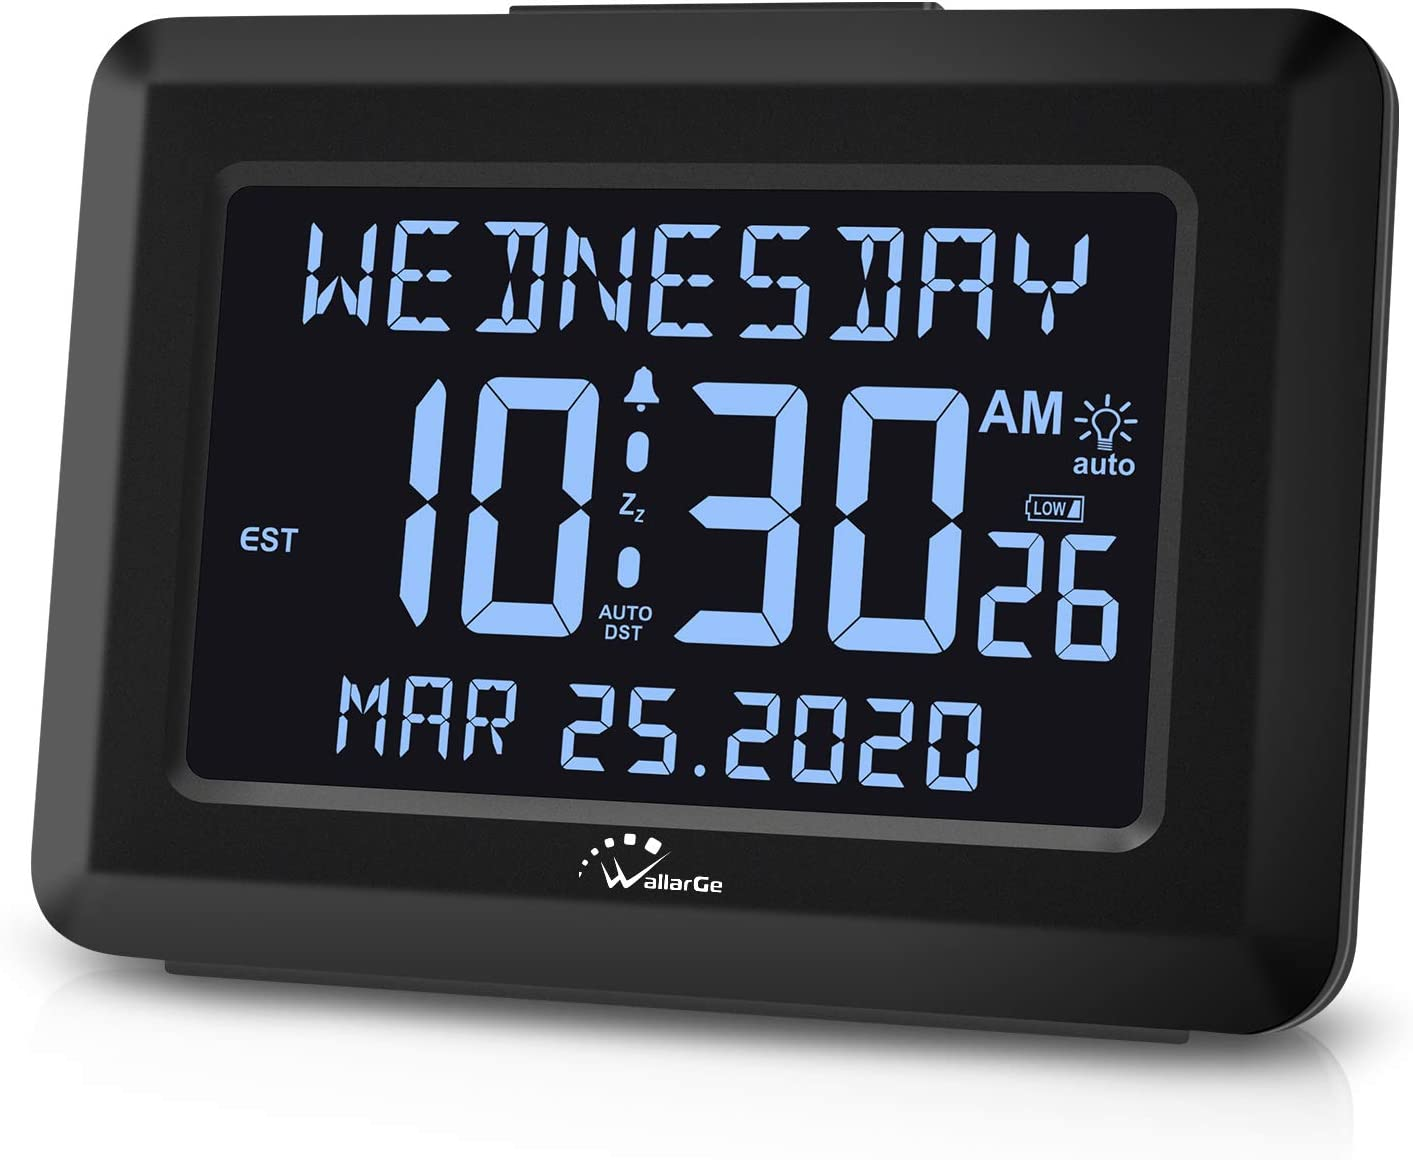 "WallarGe Digital Clock,Autoset Alarm Clock for Bedroom,USB Charger or Battery Operated,7 Brightness,6"" Large Display Desk Clock for Seniors or Alzheimer's,Auto DST,Calendar Days Alarm Clocks."